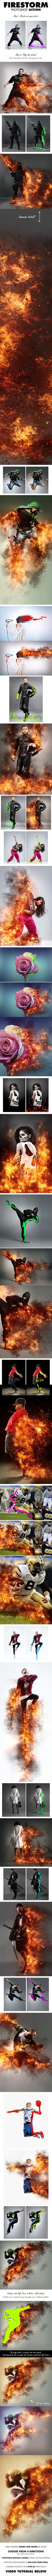 FireStorm Photoshop Action #photoeffect Download: http://graphicriver.net/item/firestorm-photoshop-action/13392199?ref=ksioks